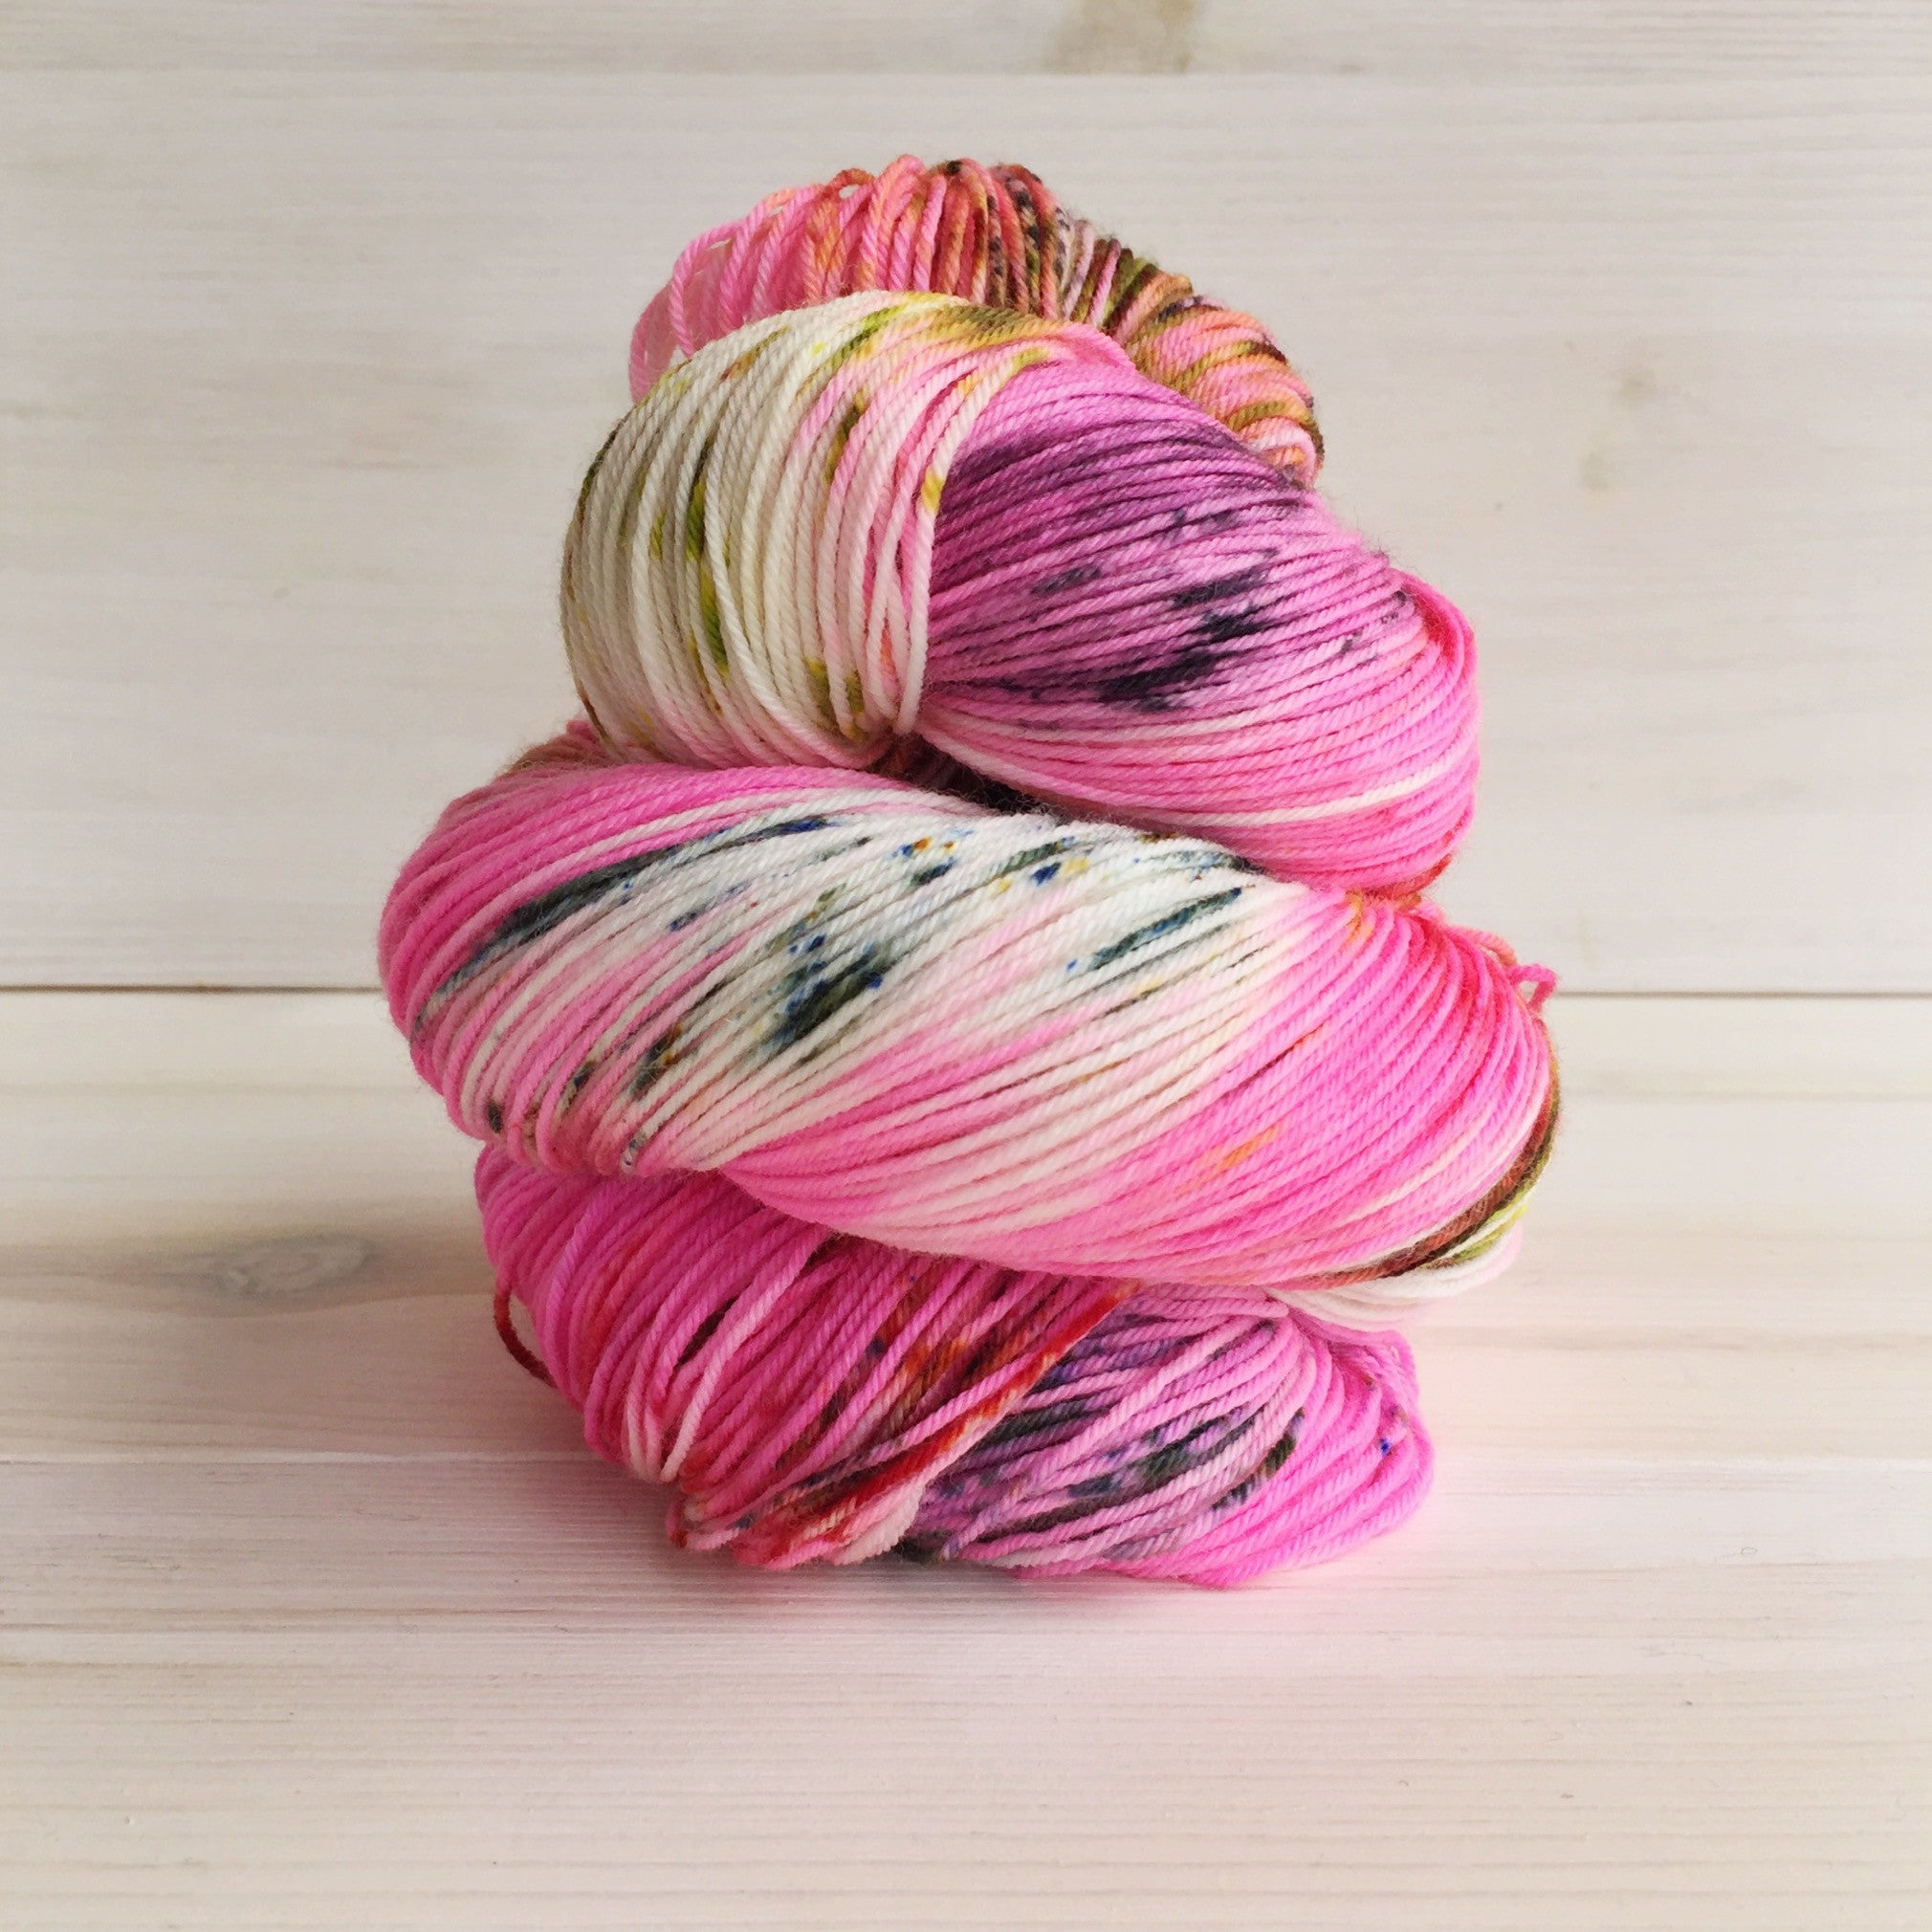 Hey Lady Hey Superwash Merino and Nylon Blend DK Yarn - Prim